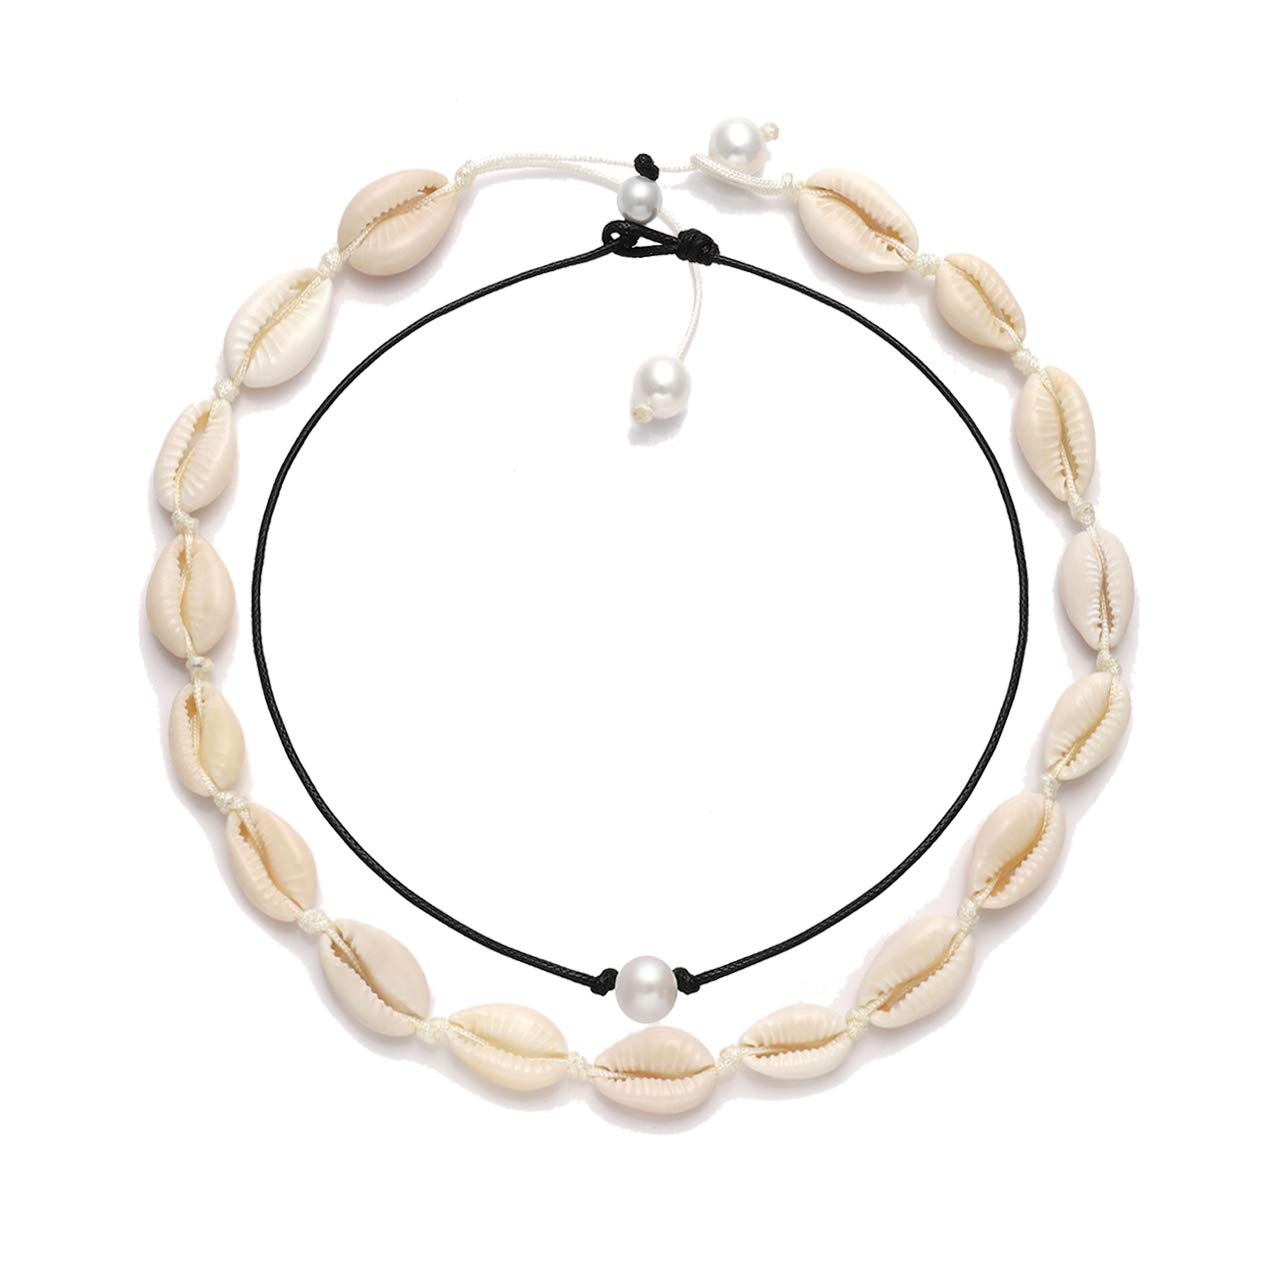 VUJANTIRY Cowrie Shell Choker Necklace for Women Hawaiian Seashell Pearls Choker Necklace Statement Adjustable Cord Necklace Set